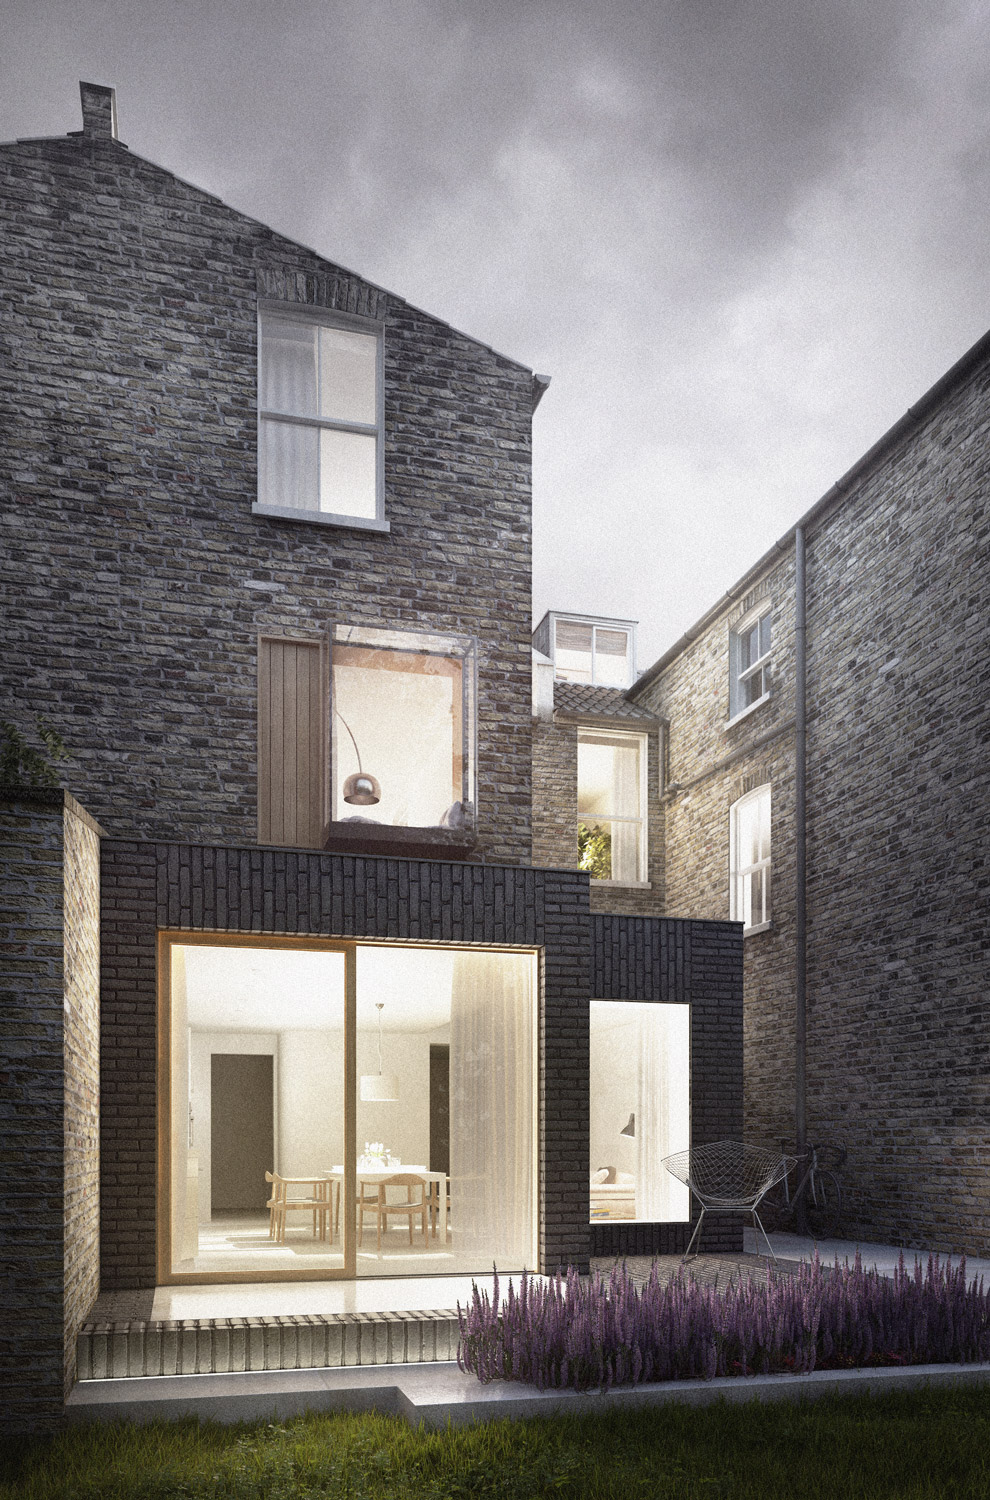 Kensington house extension: architect designed victorian house refurbishment